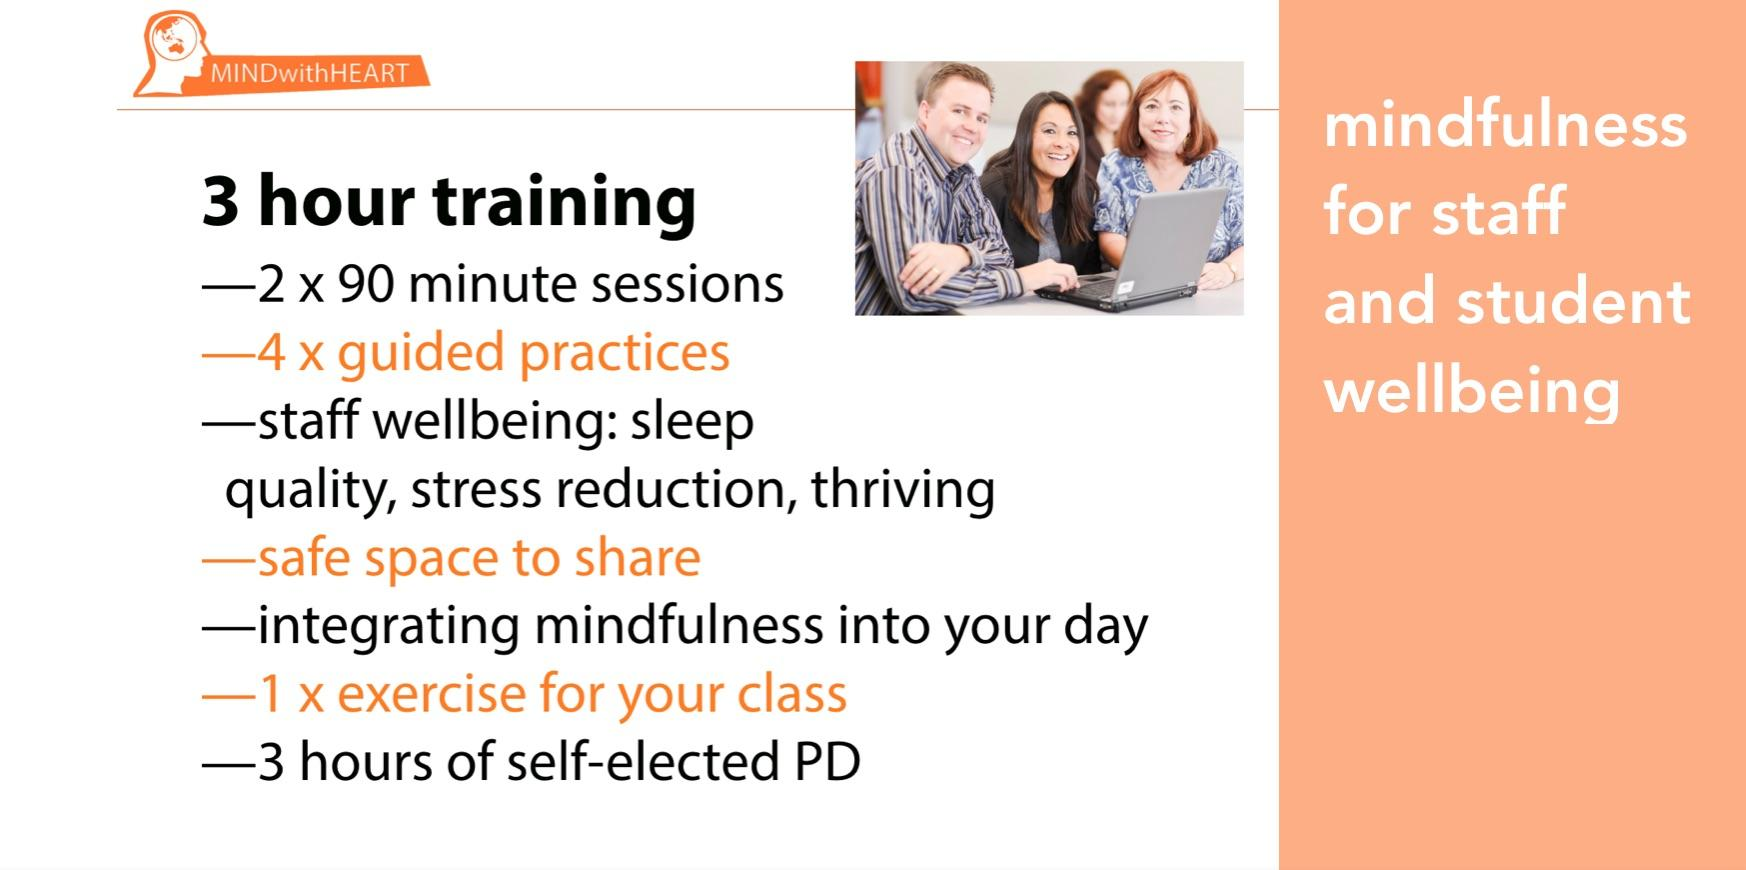 Mindfulness for Staff and Student Wellbeing | 3 Hour Training